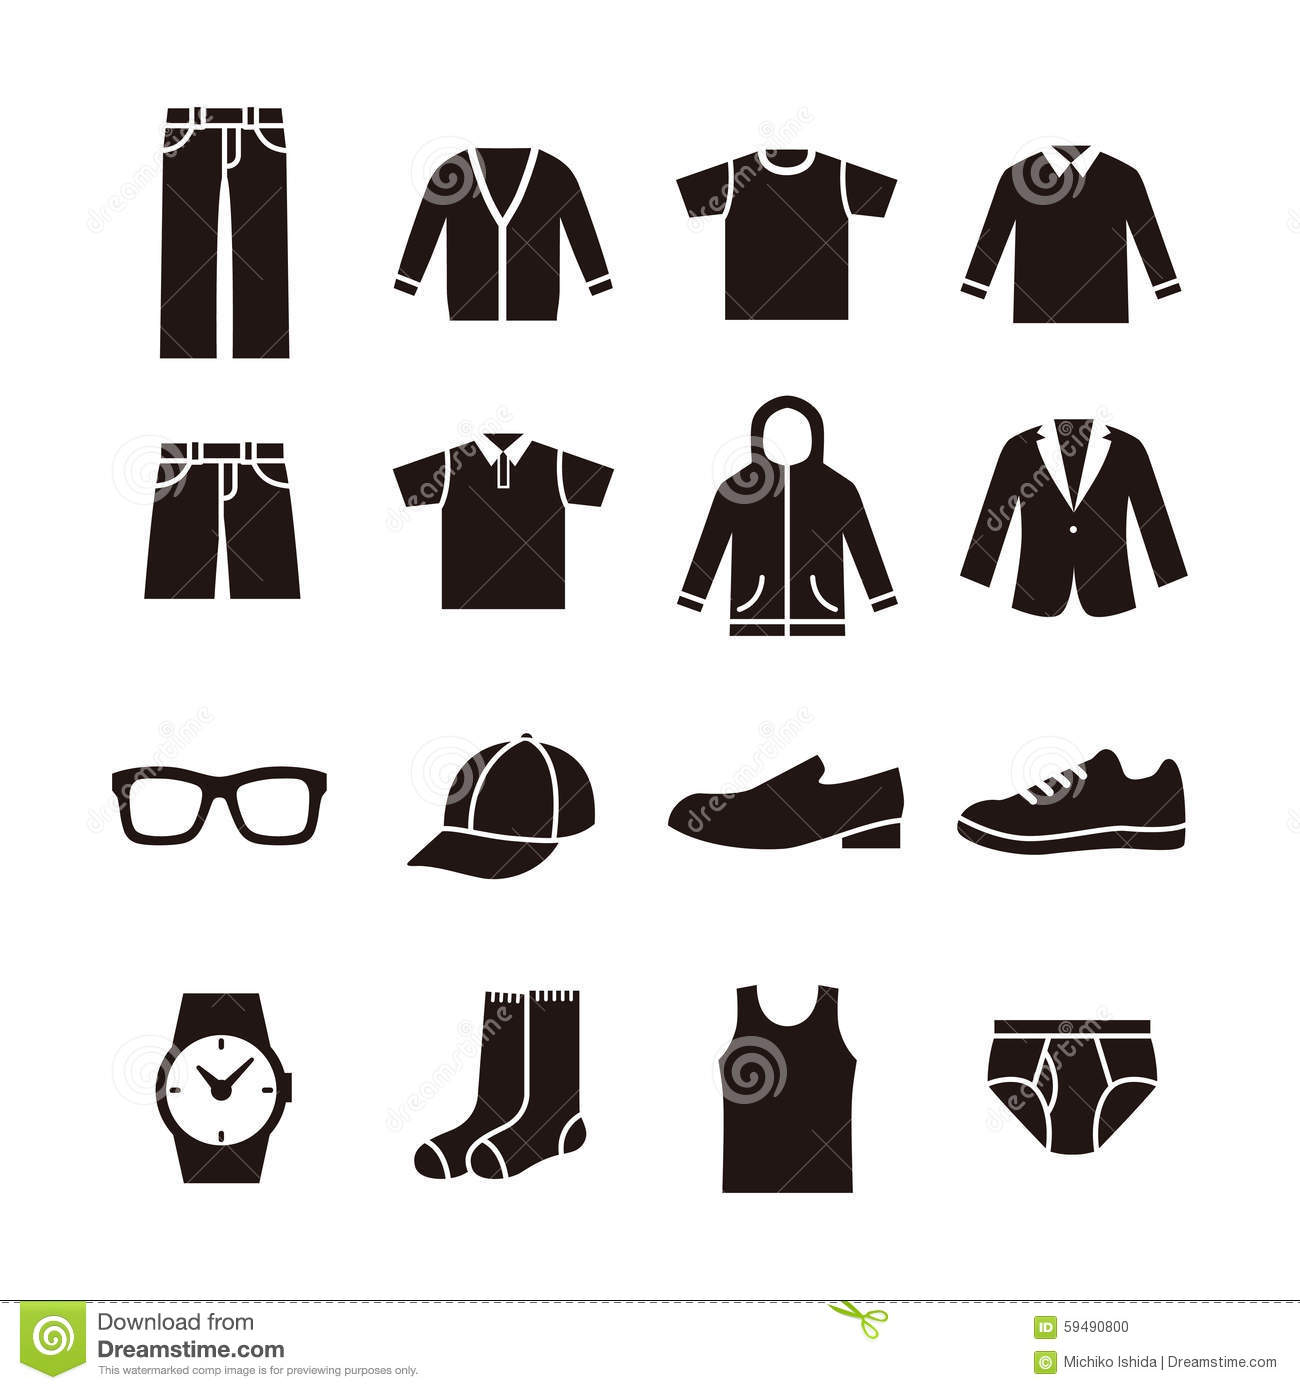 Underpants Icon Of Vector Illustration For Web And Mobile Vector Illustration Cartoondealer